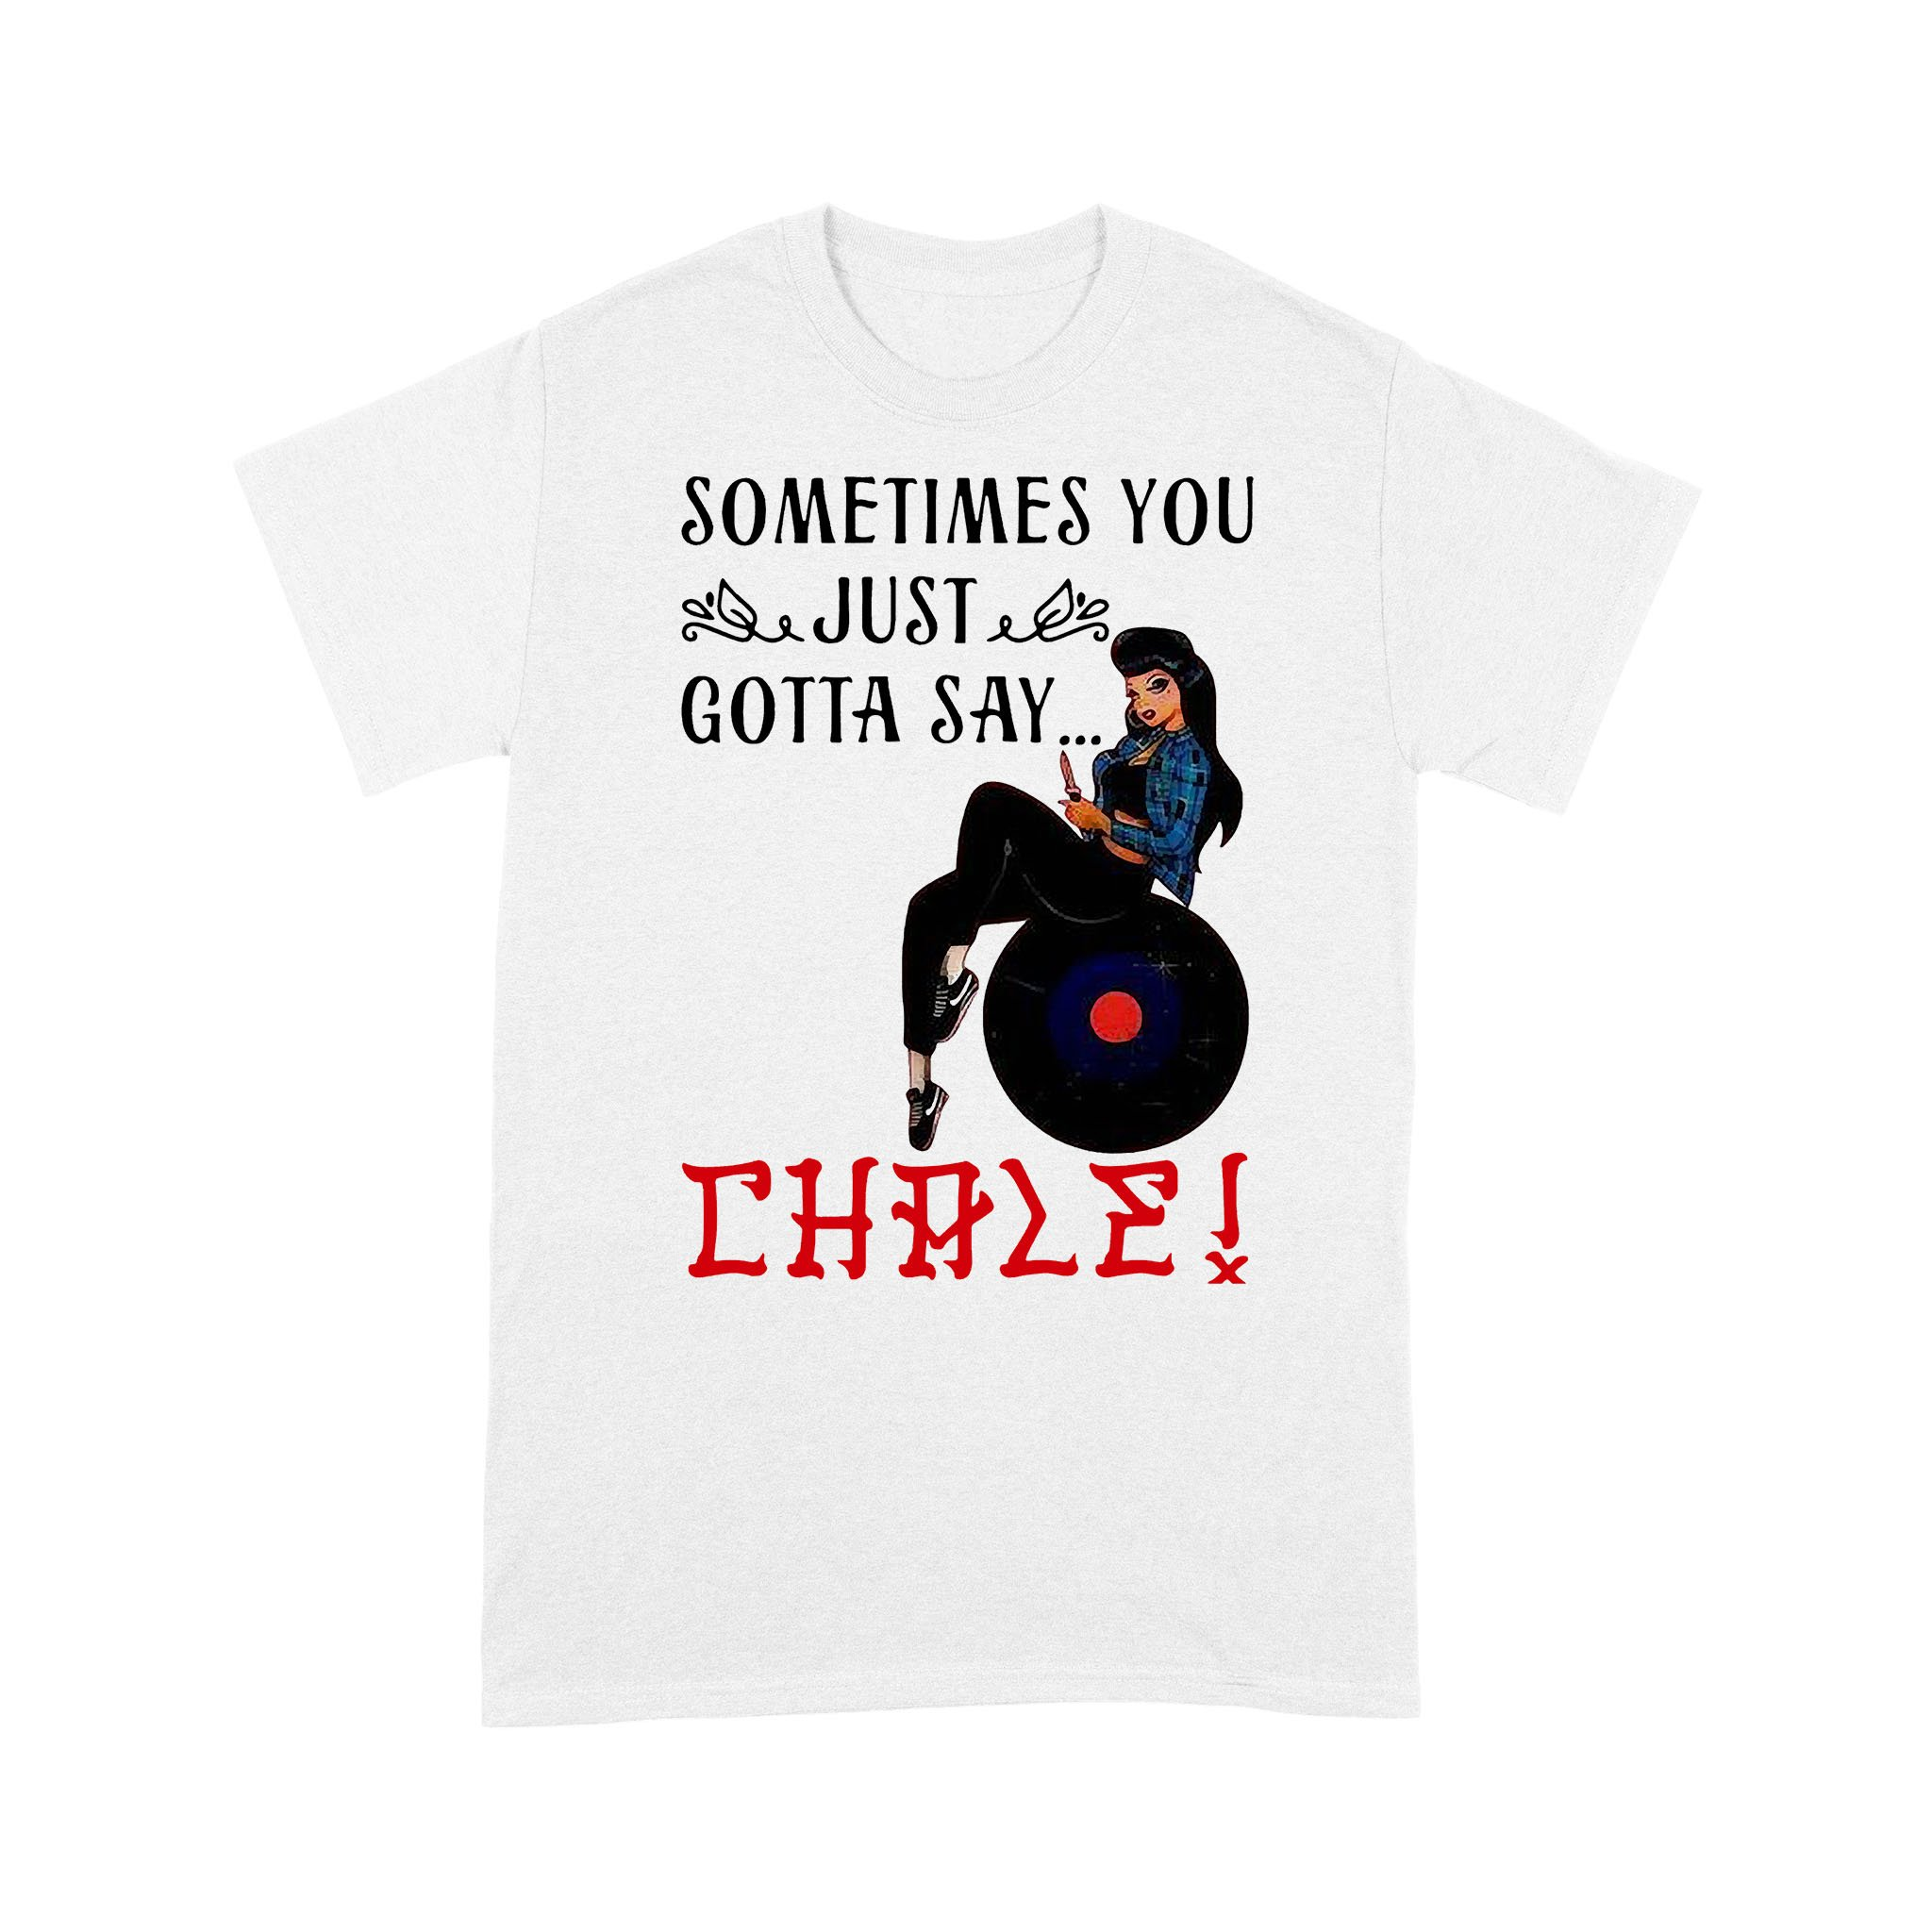 Sometimes You Just Gotta Say Chale T-shirt